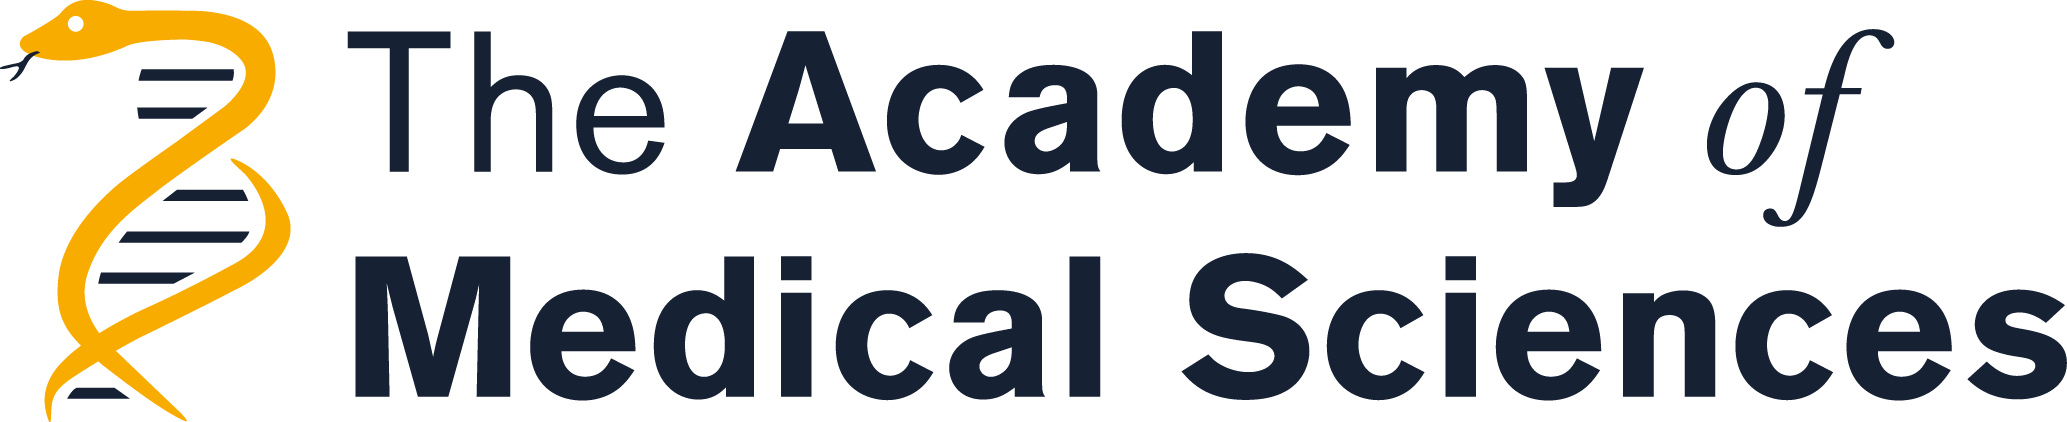 the logo for the academy of medical sciences